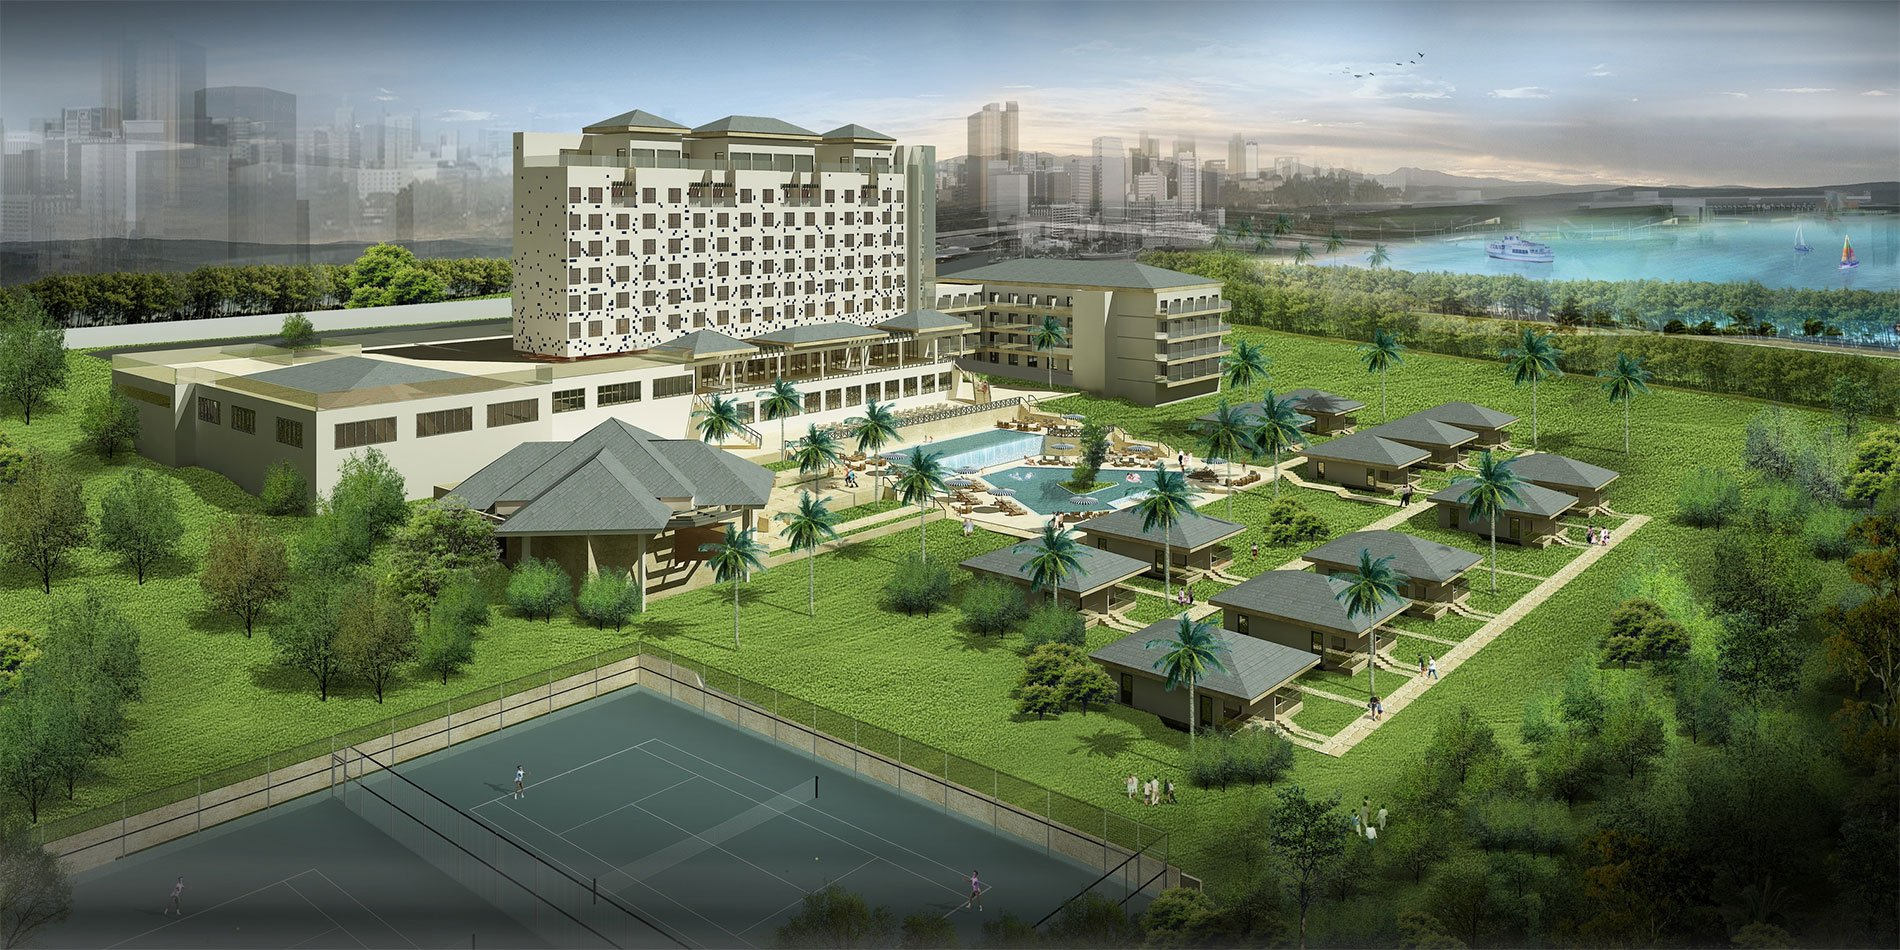 Best Western International Plans For 13 Hotels In West Africa Adds New Nigeria